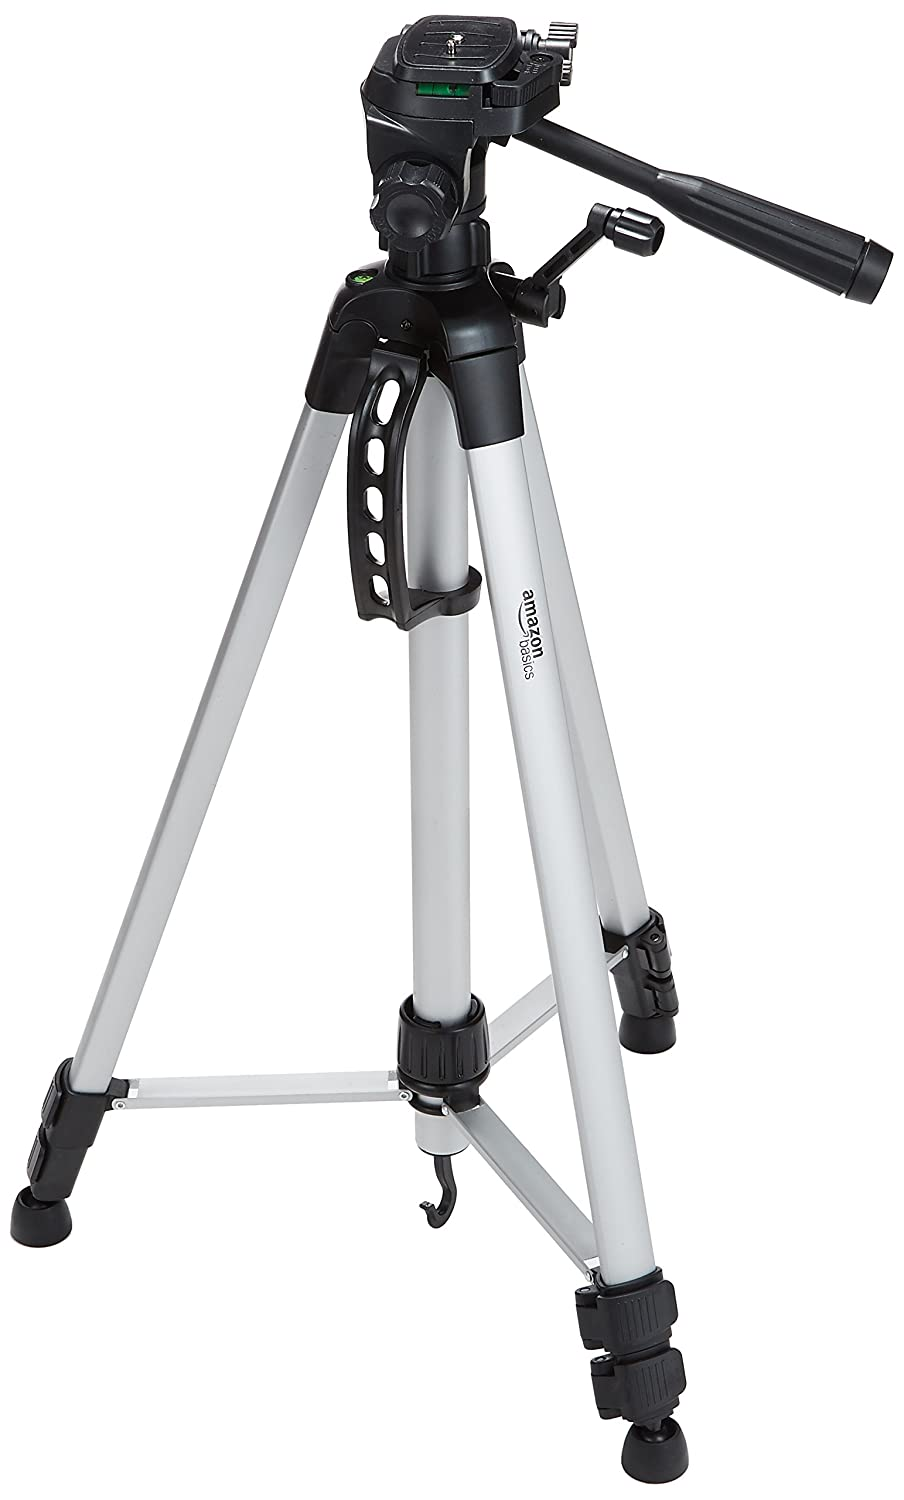 Amazon Basics Tripods